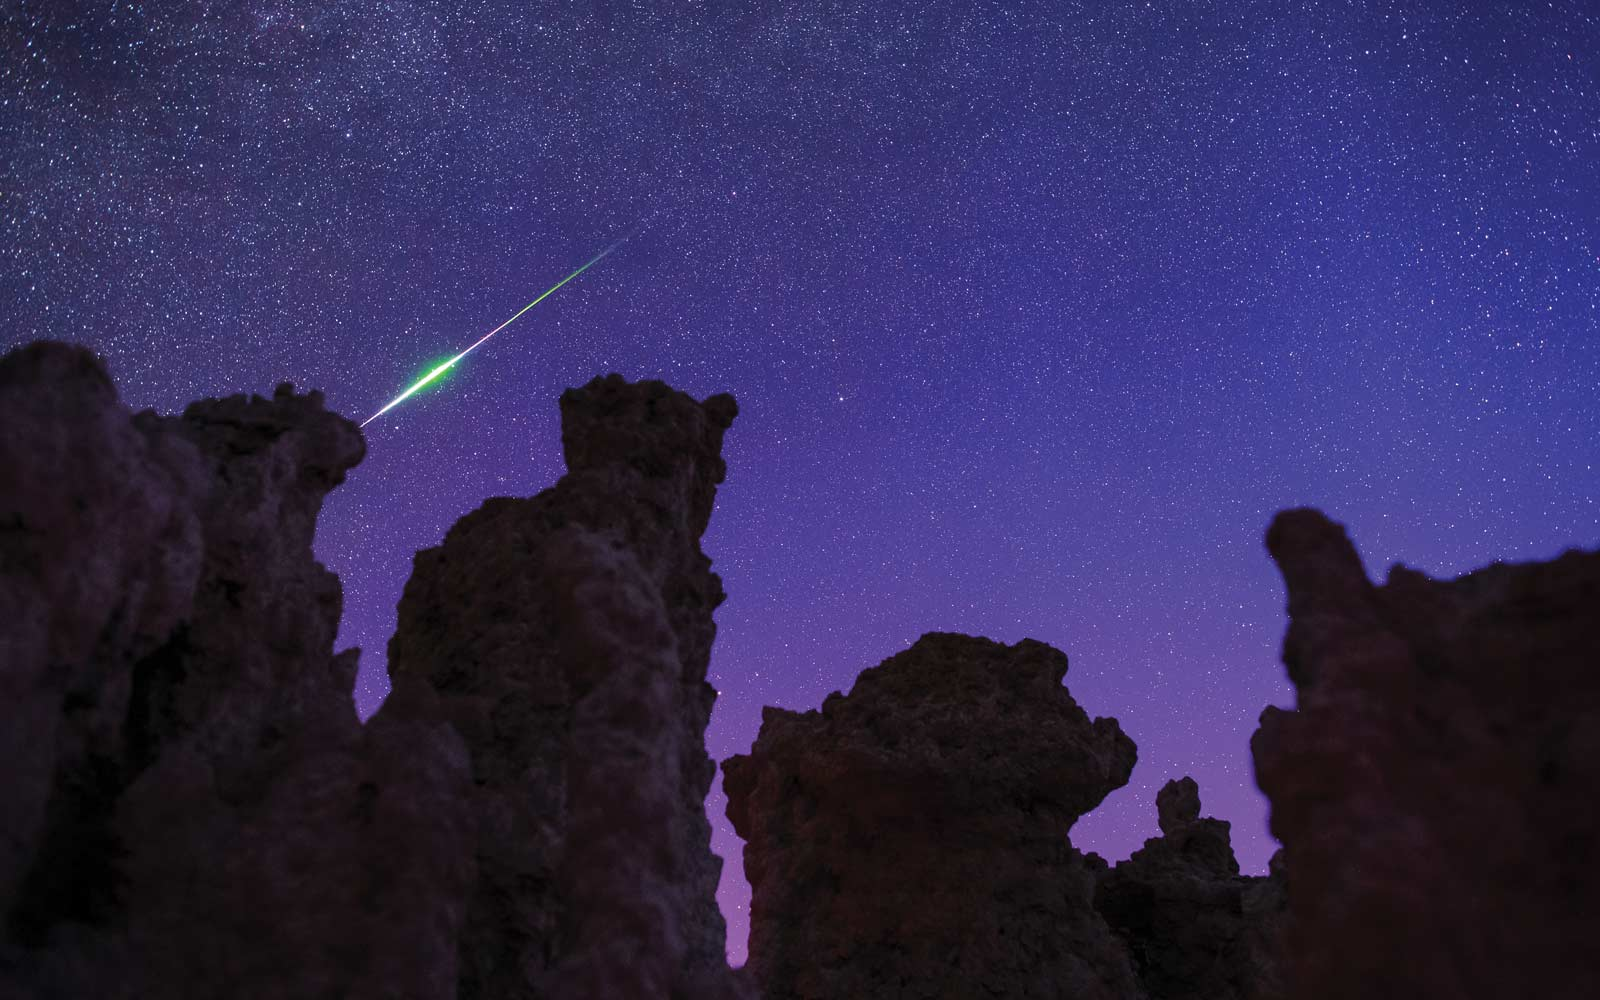 Perseids Meteor, Mono Lake, California